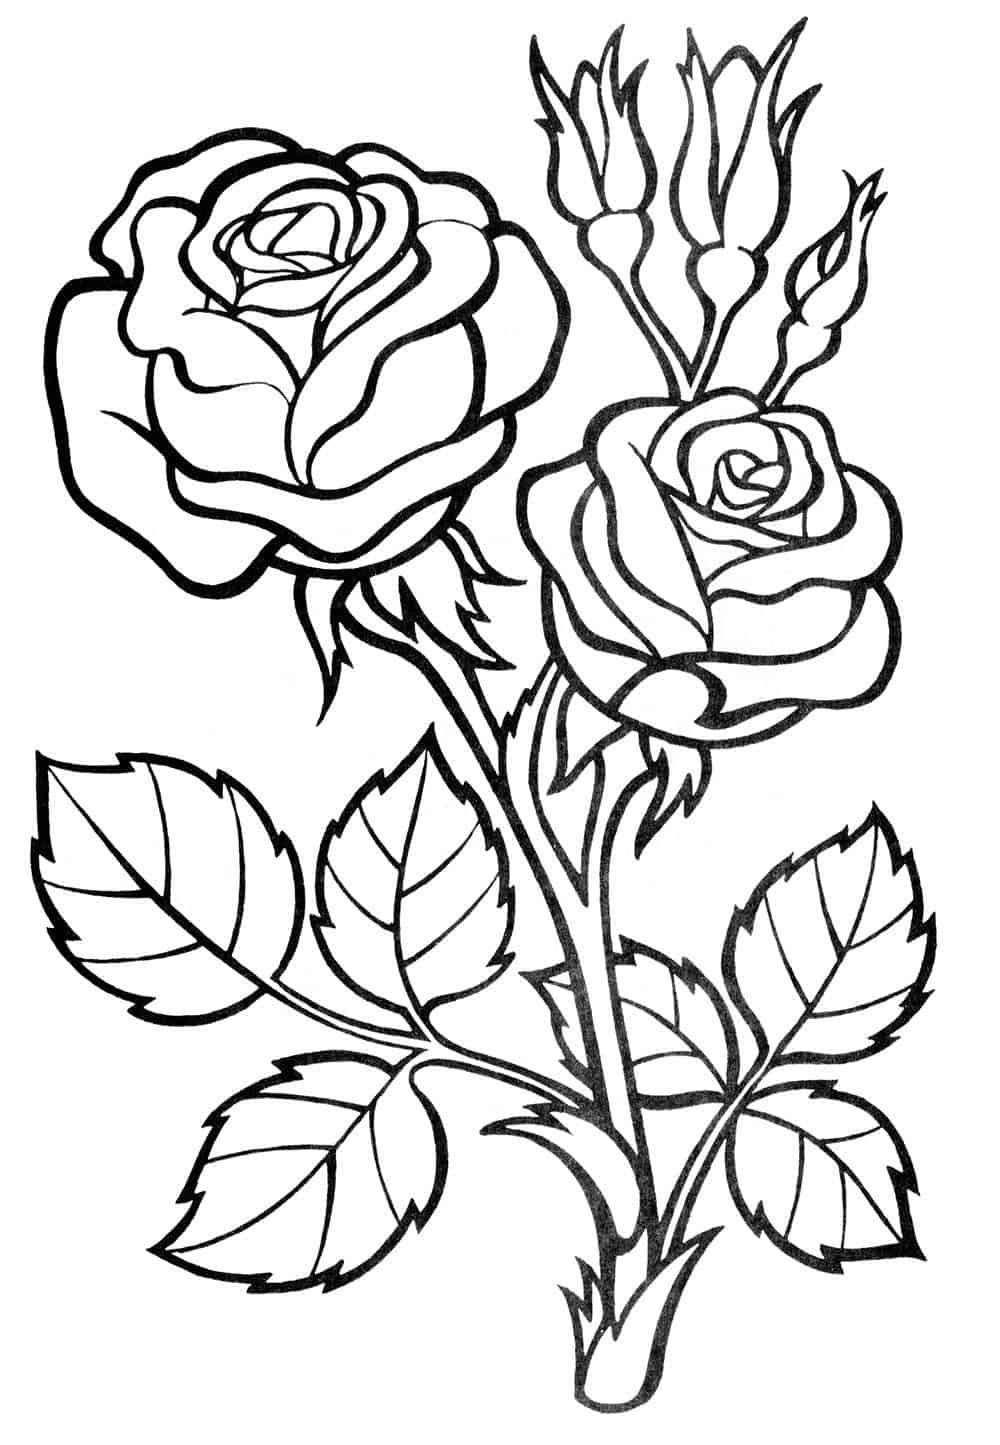 abstract flower coloring pages abstract flower drawing at getdrawings free download pages flower coloring abstract